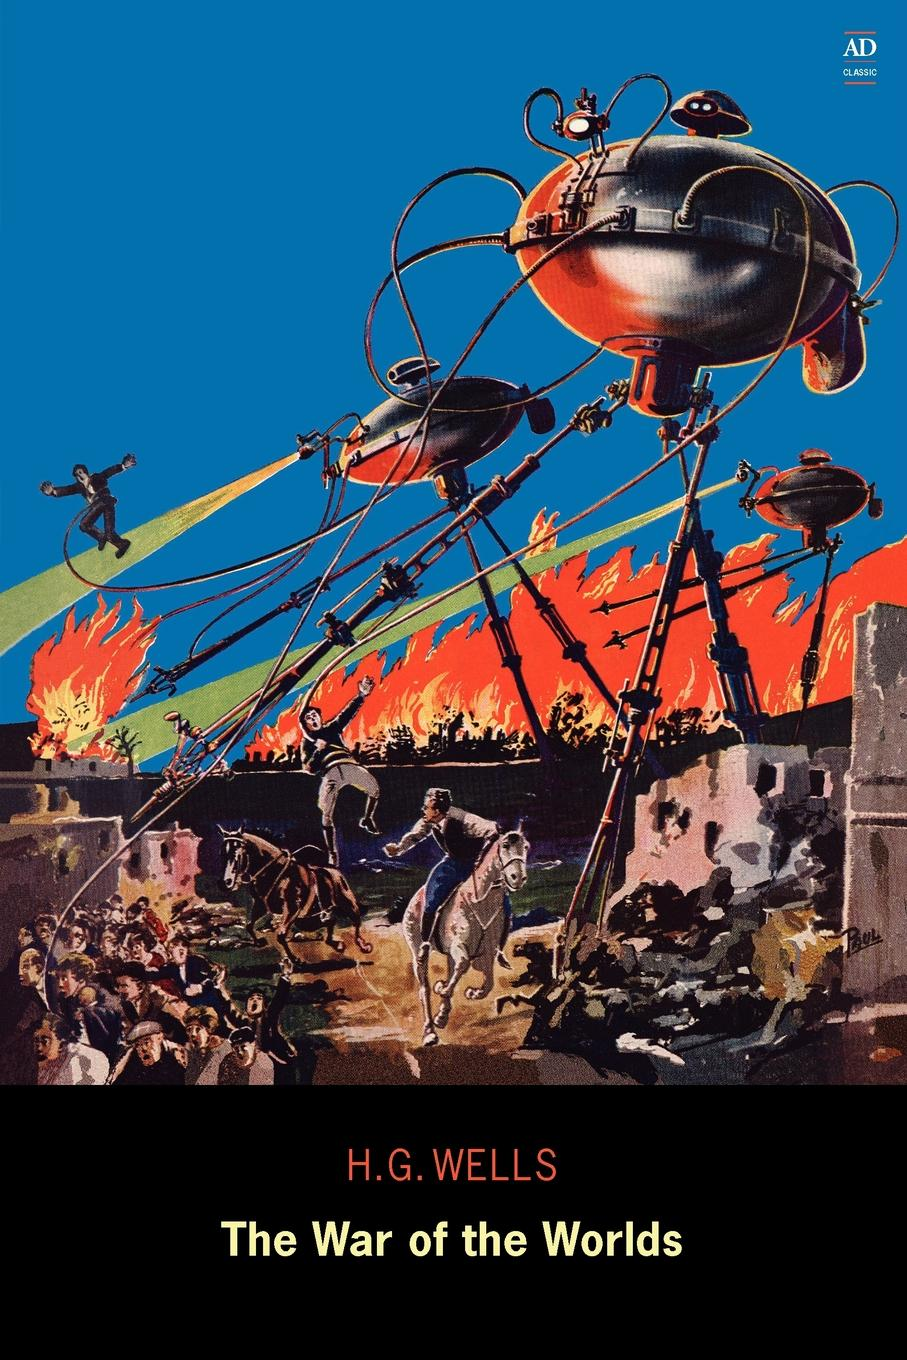 H. G. Wells The War of the Worlds (Ad Classic) wells h the war of the worlds